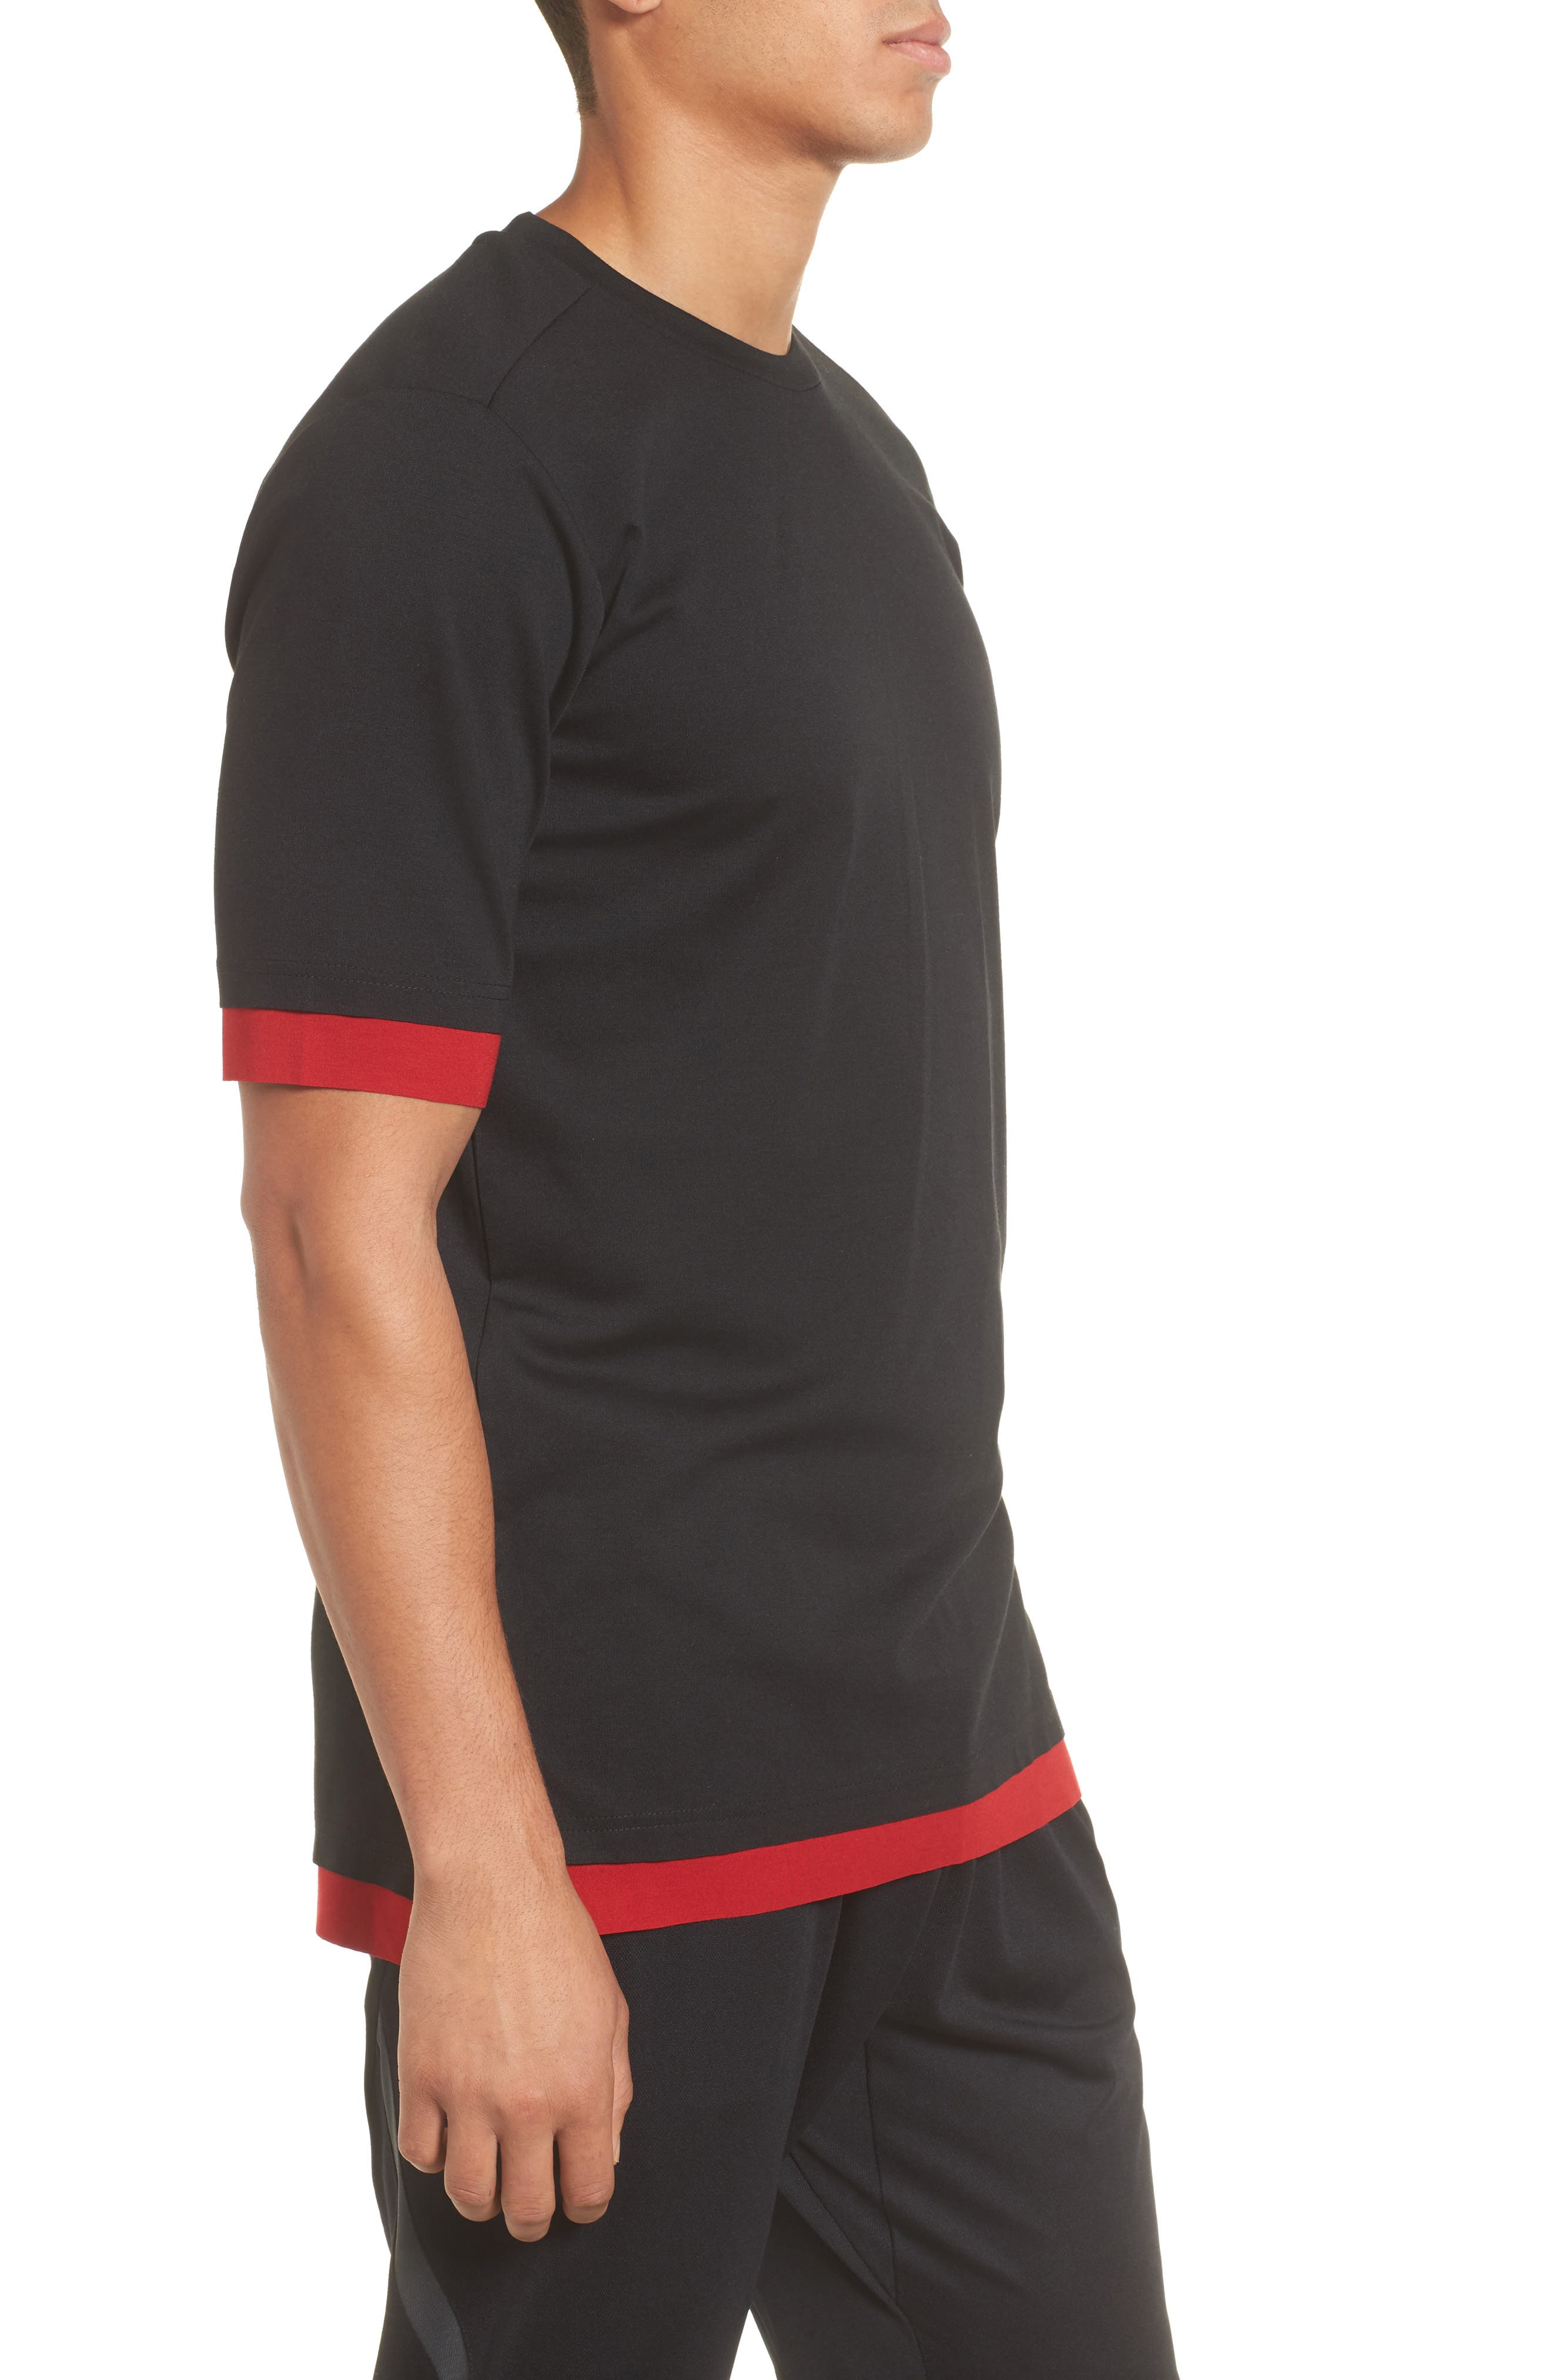 Sportswear Tech T-Shirt,                             Alternate thumbnail 3, color,                             Black/ Gym Red/ Anthracite